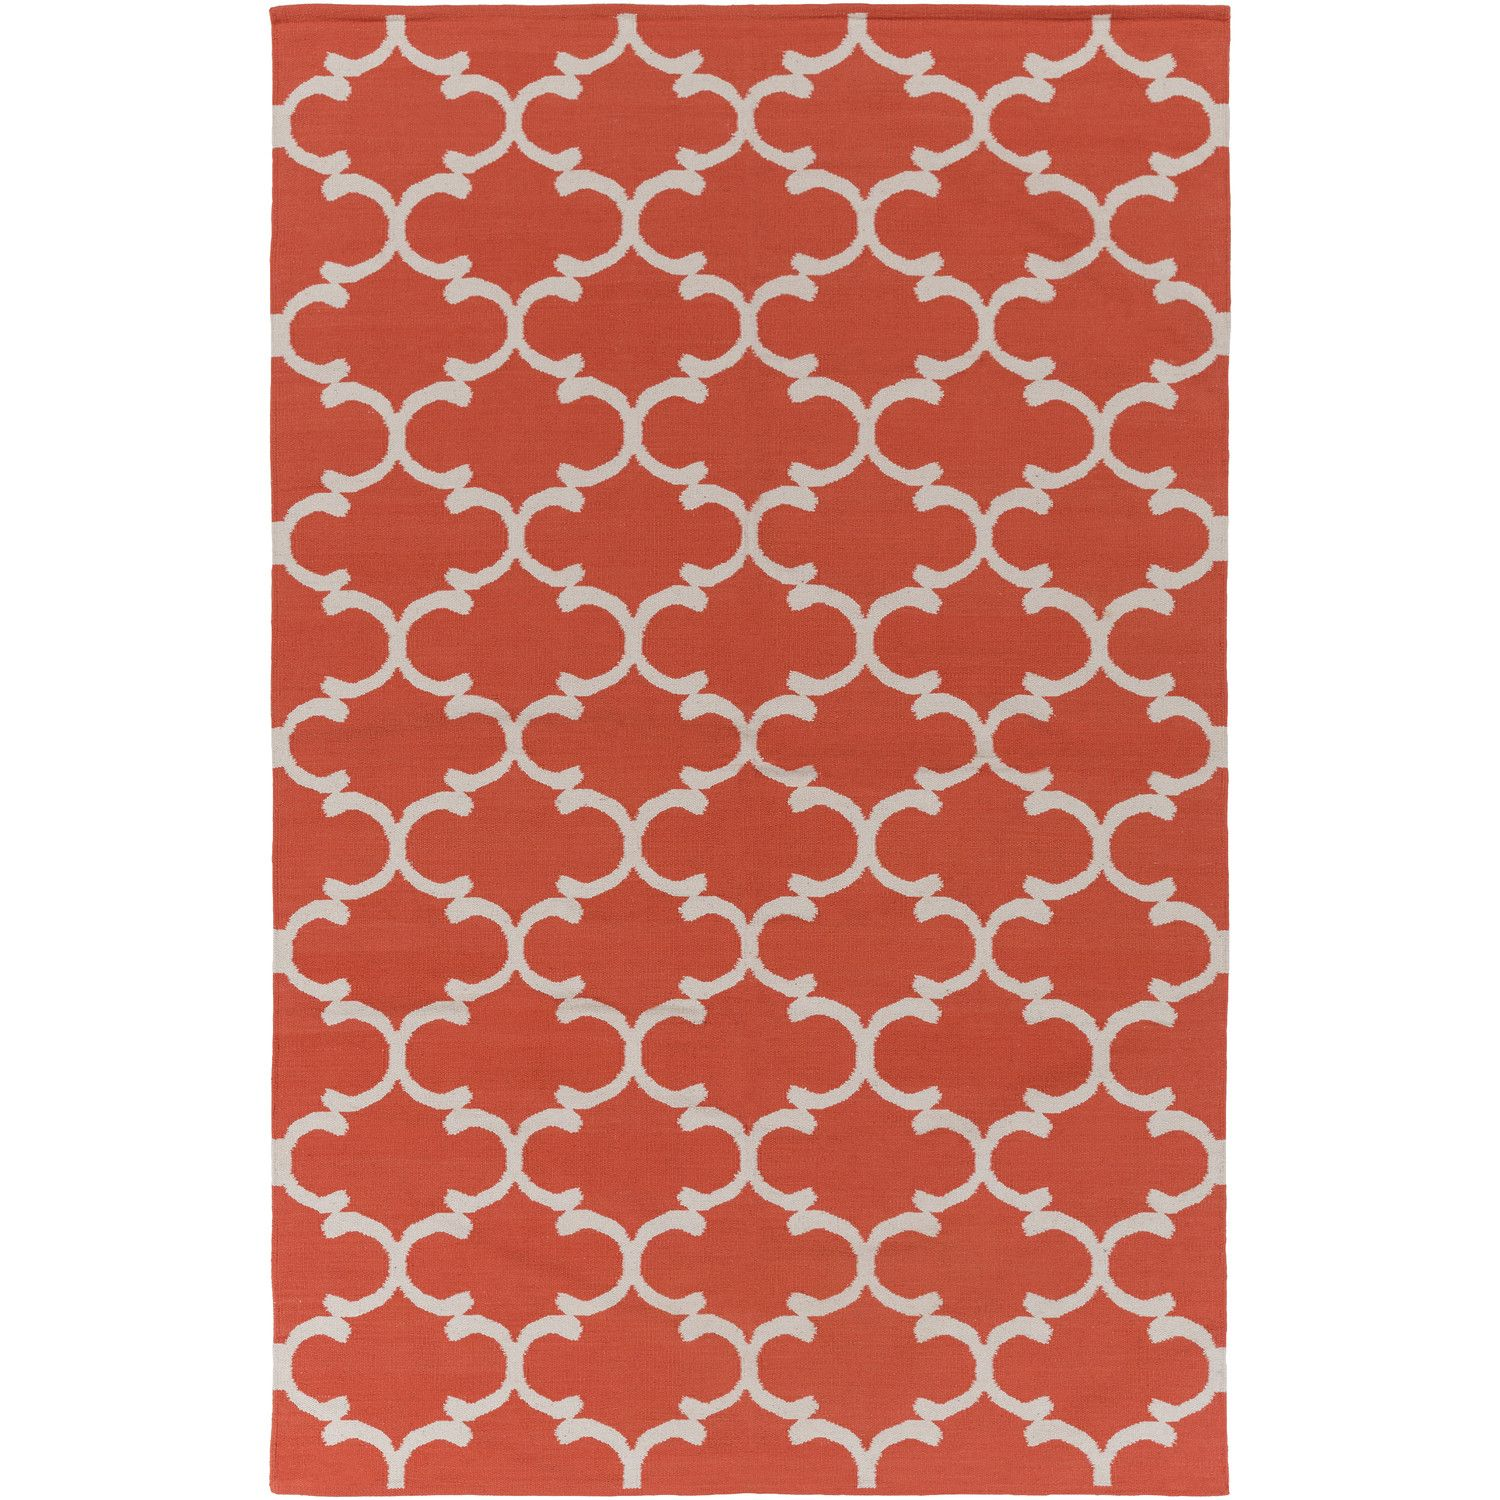 Artistic Weavers Vogue Lola Coral Ivory Area Rug 8x10